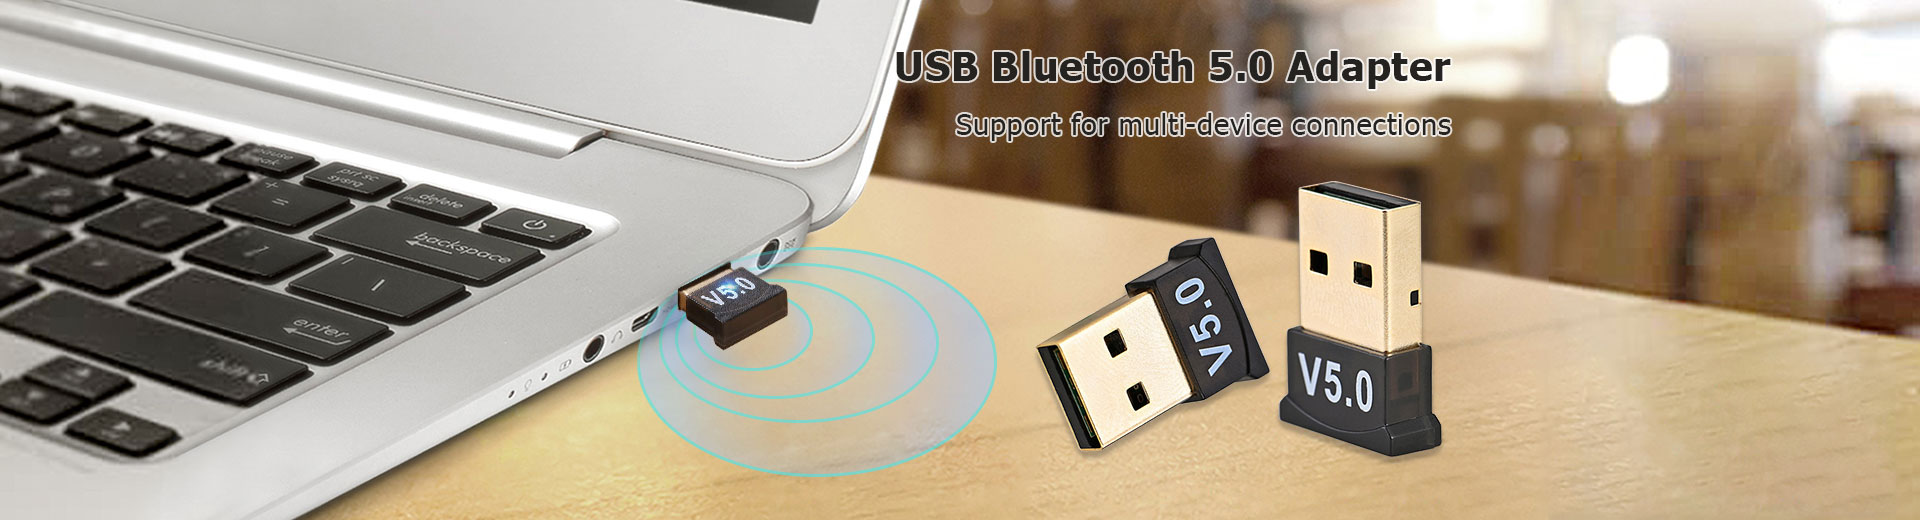 USB Bluetooth 5.0 Adapter